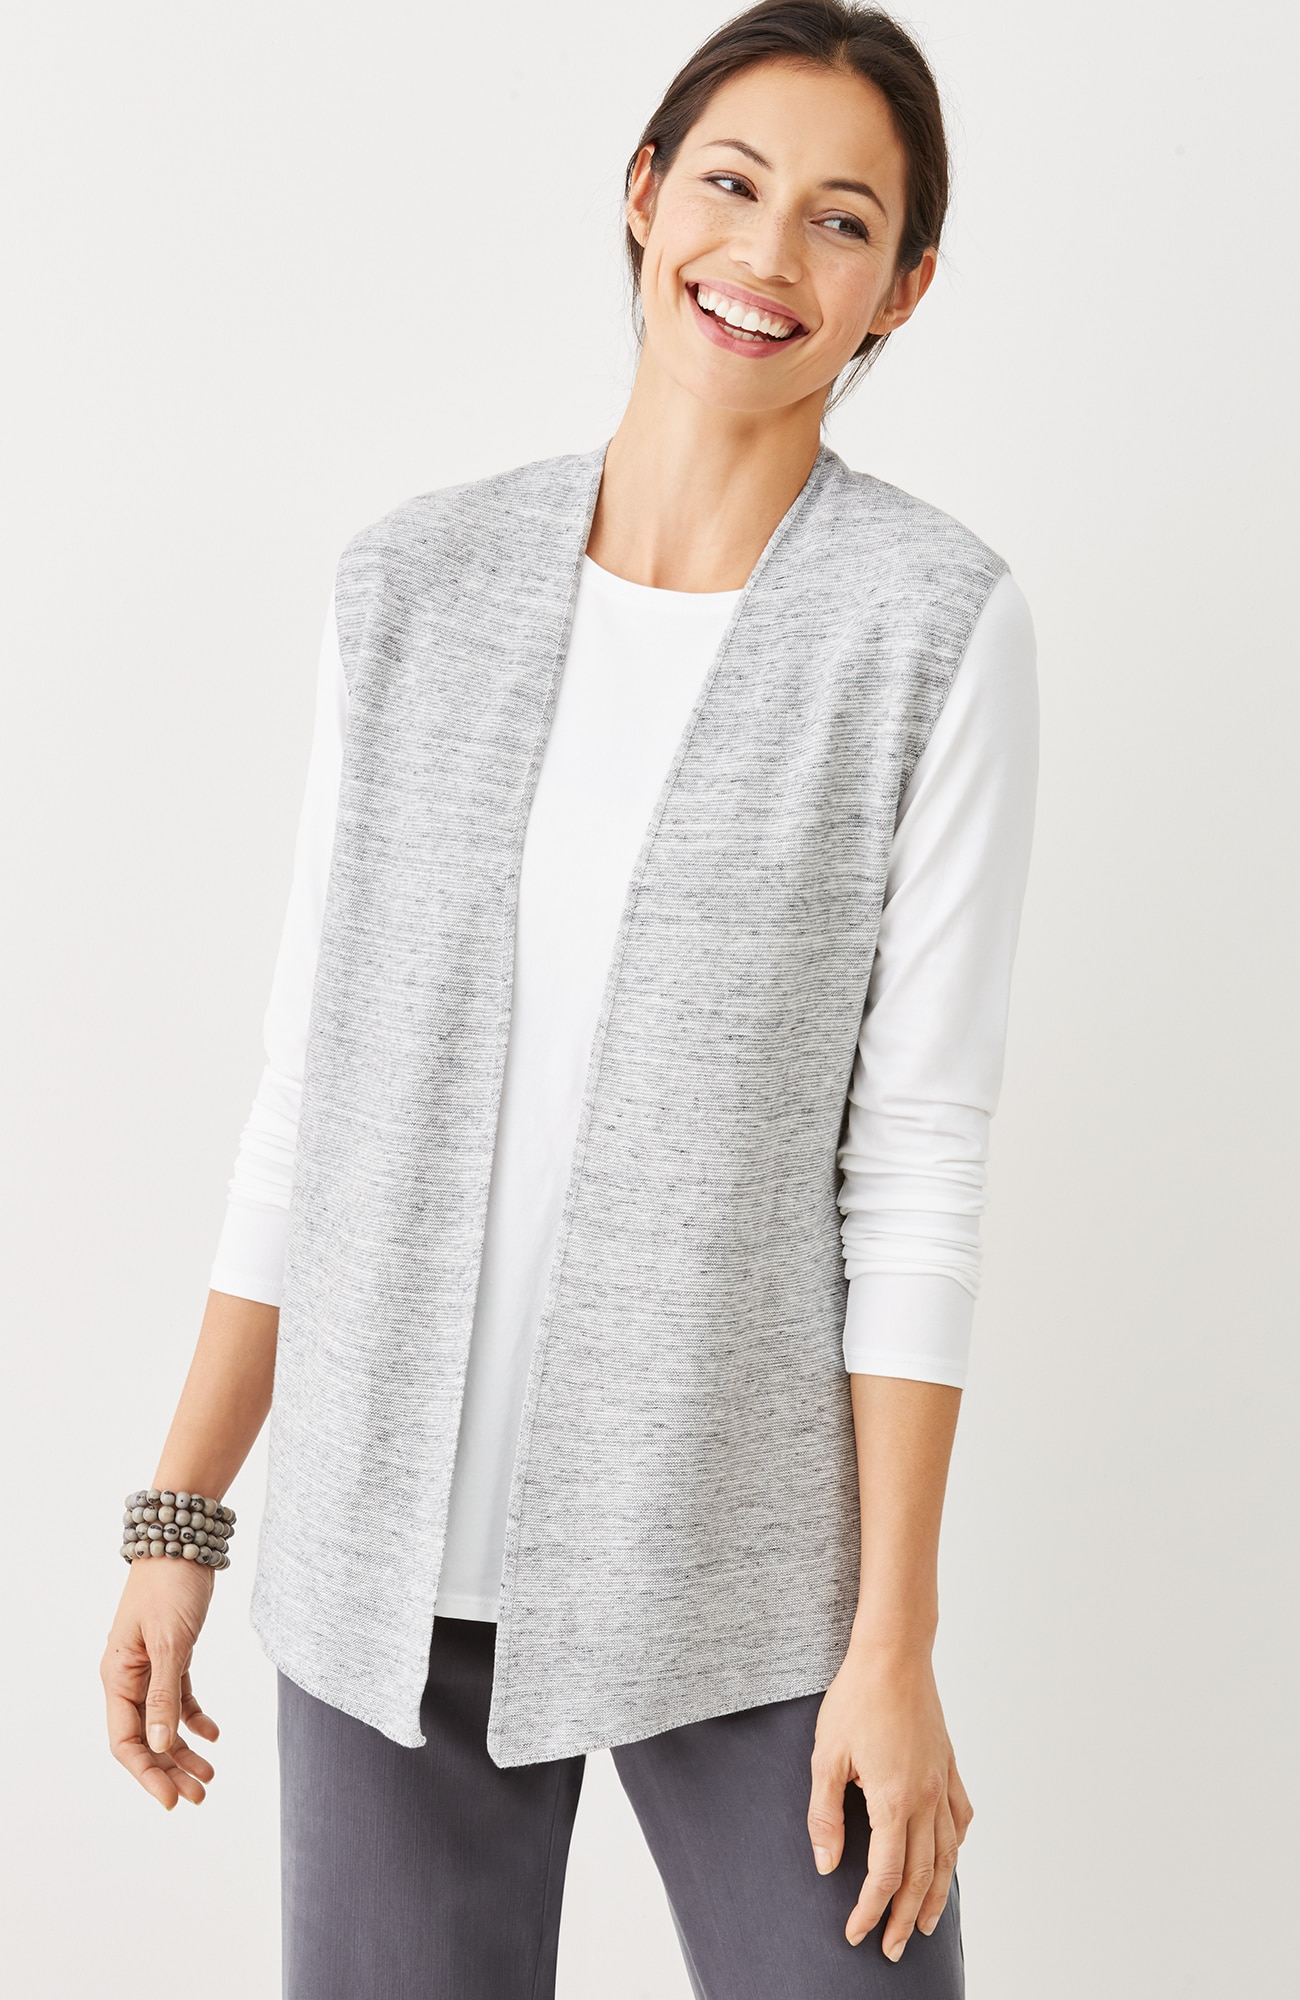 Pure Jill textured sweater vest